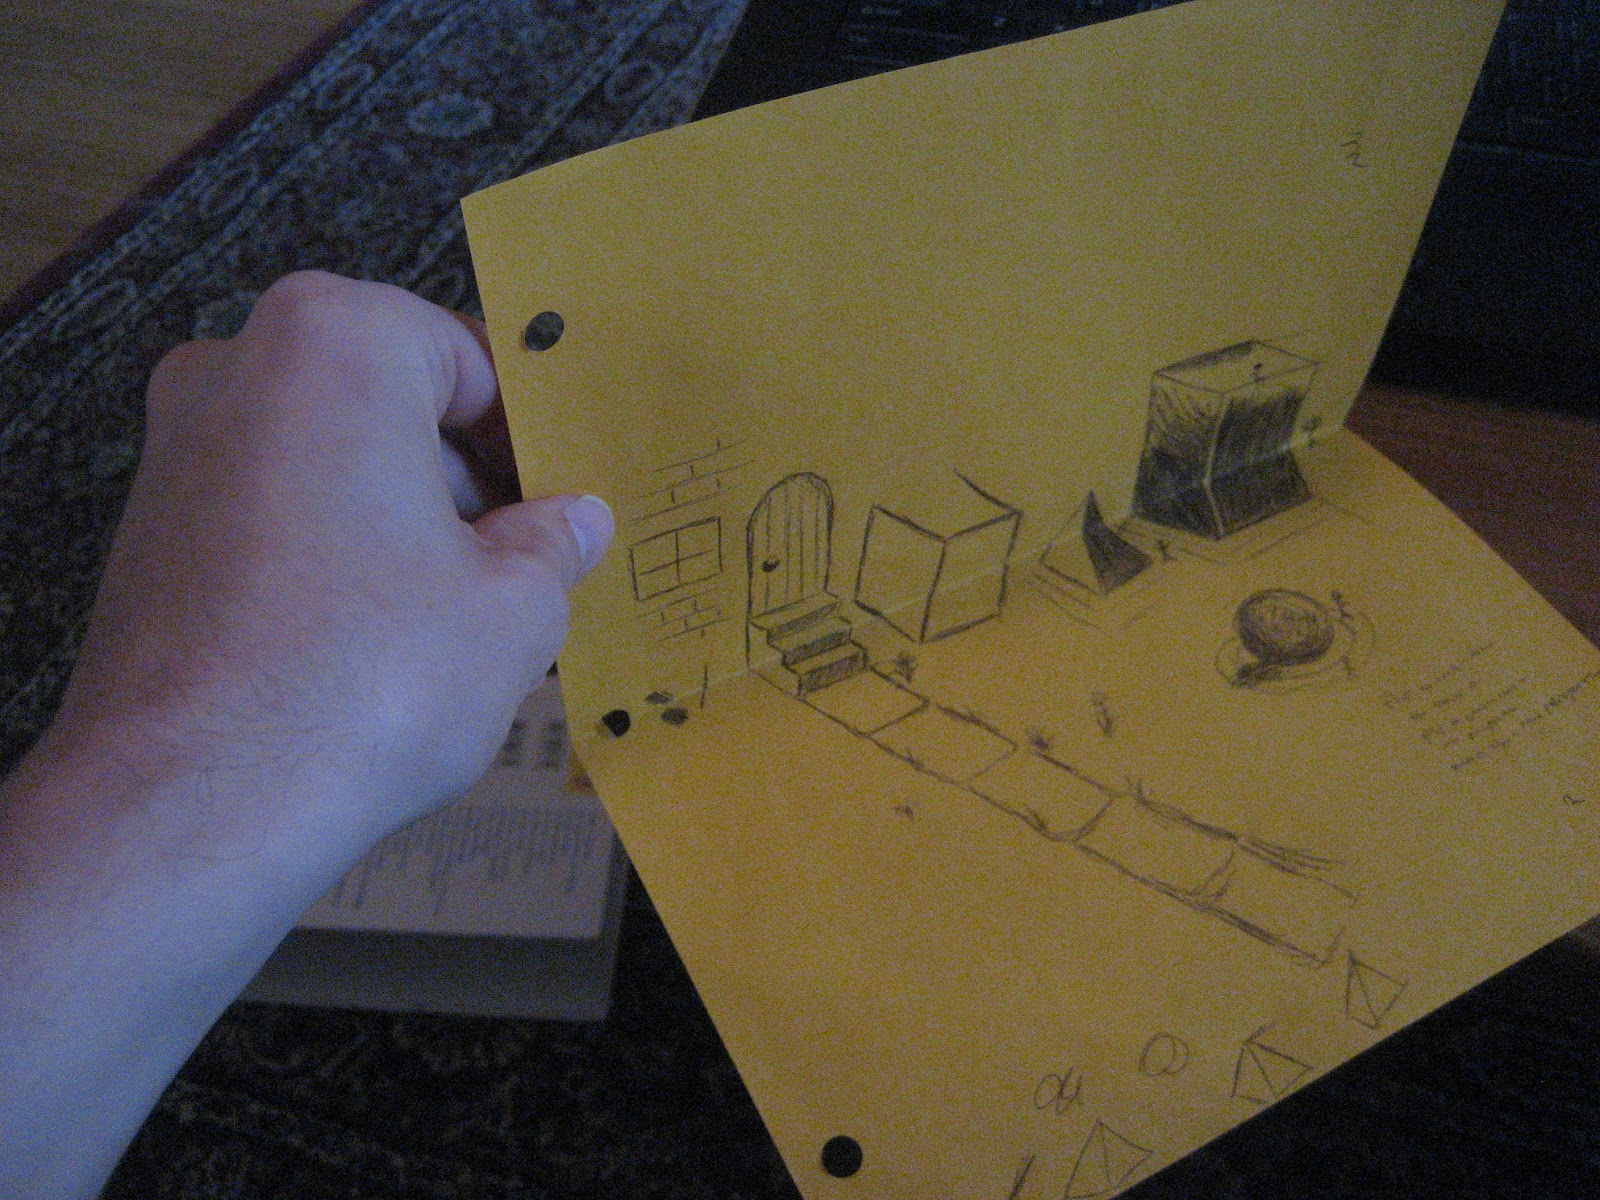 Drawn paper looks 3d Chuck 2D  drawing Does